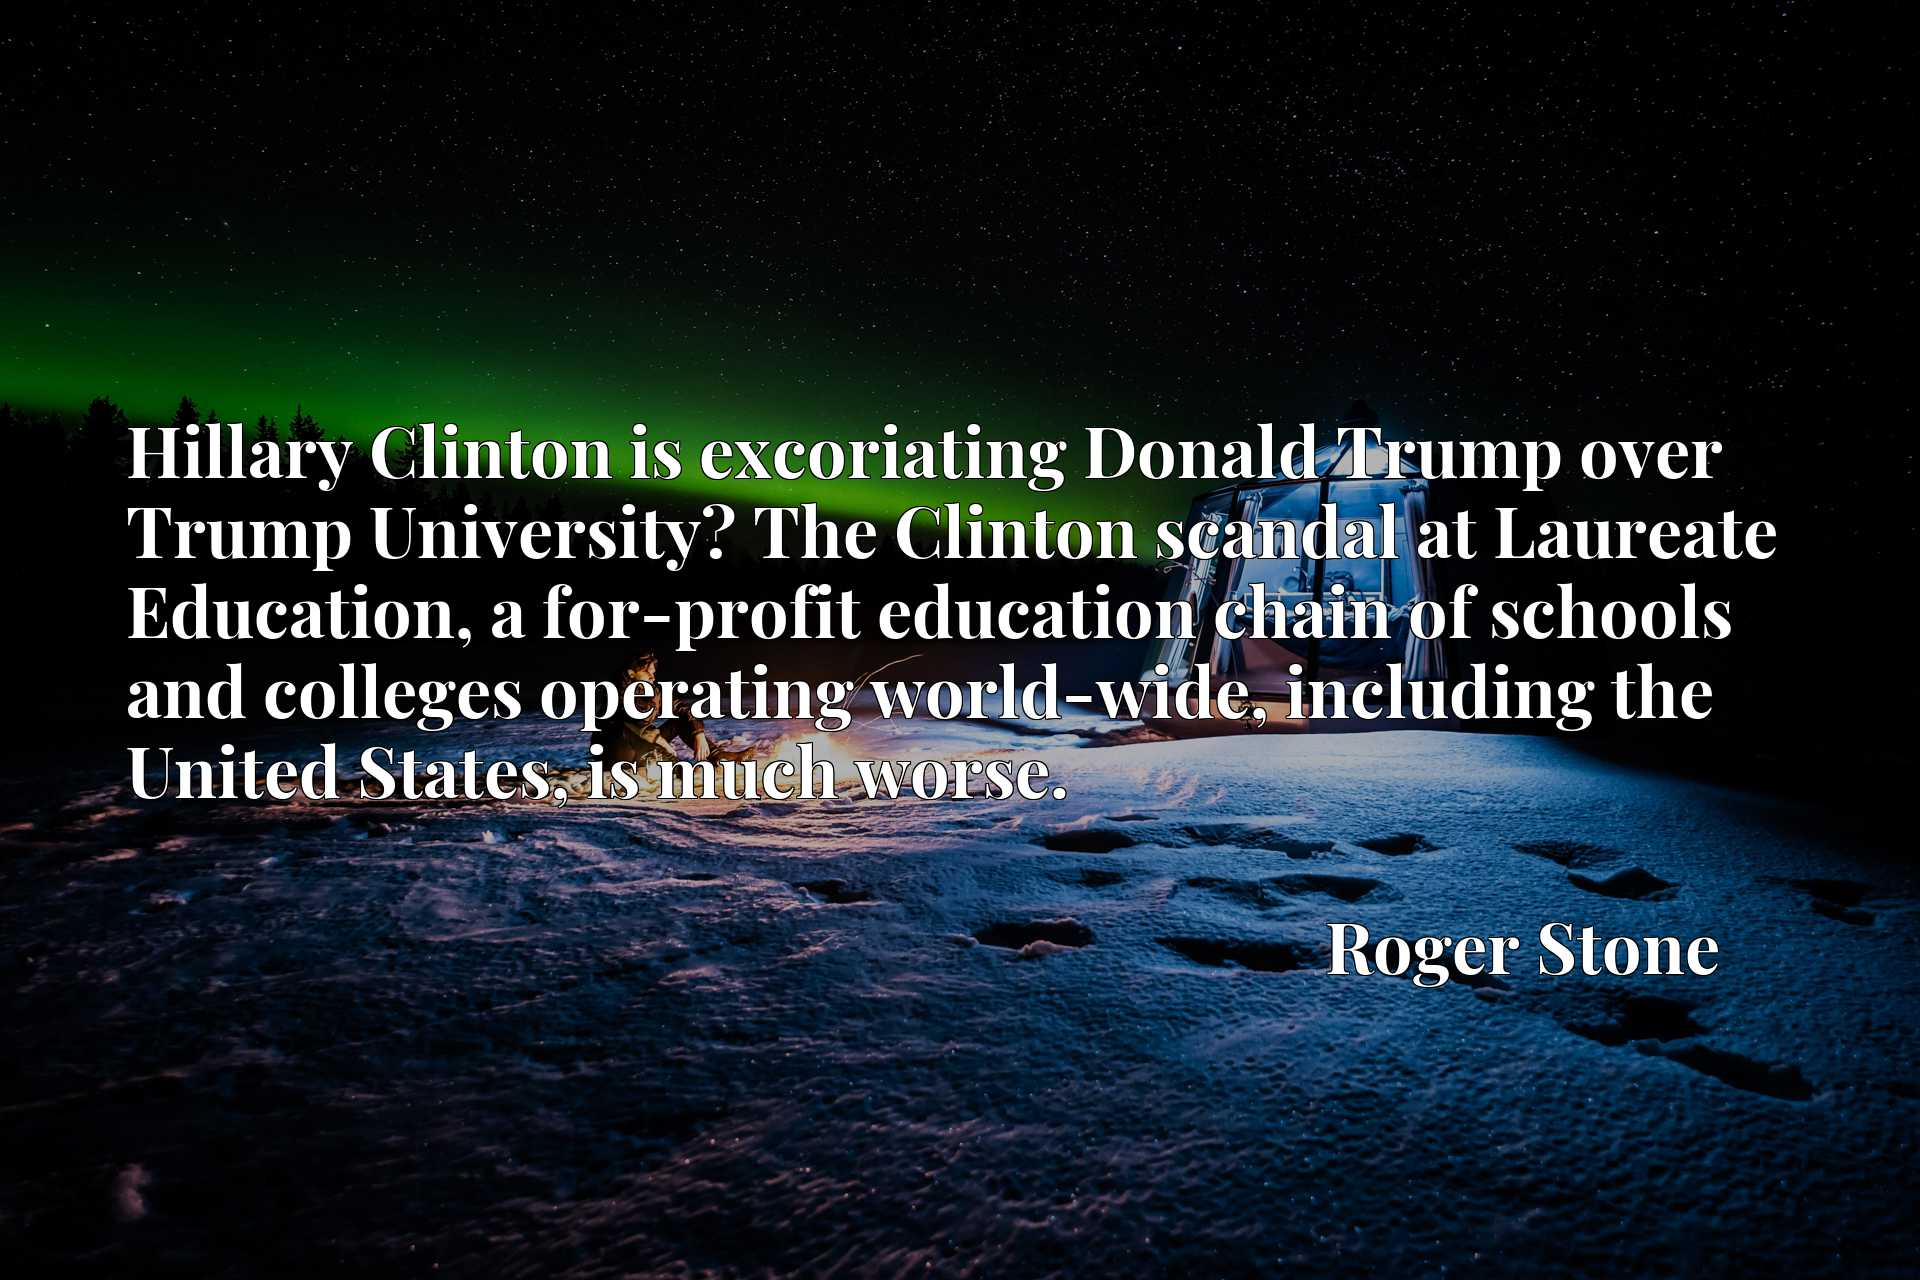 Hillary Clinton is excoriating Donald Trump over Trump University? The Clinton scandal at Laureate Education, a for-profit education chain of schools and colleges operating world-wide, including the United States, is much worse.